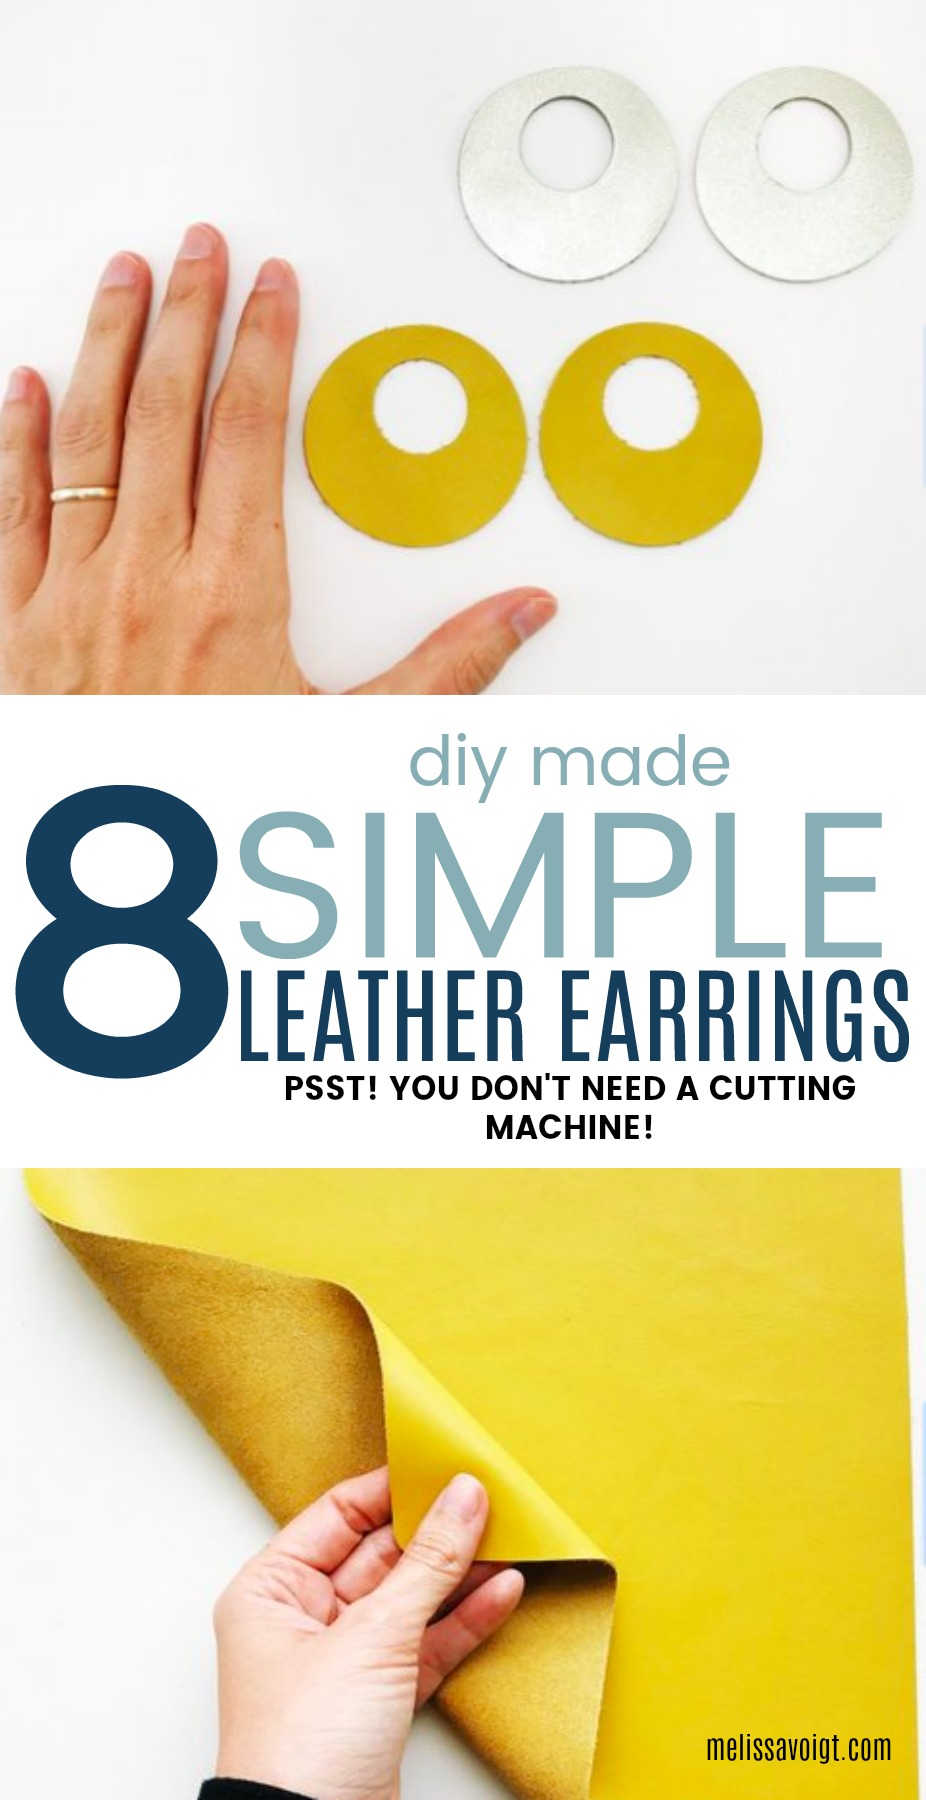 leather earrings without machine 3.jpg